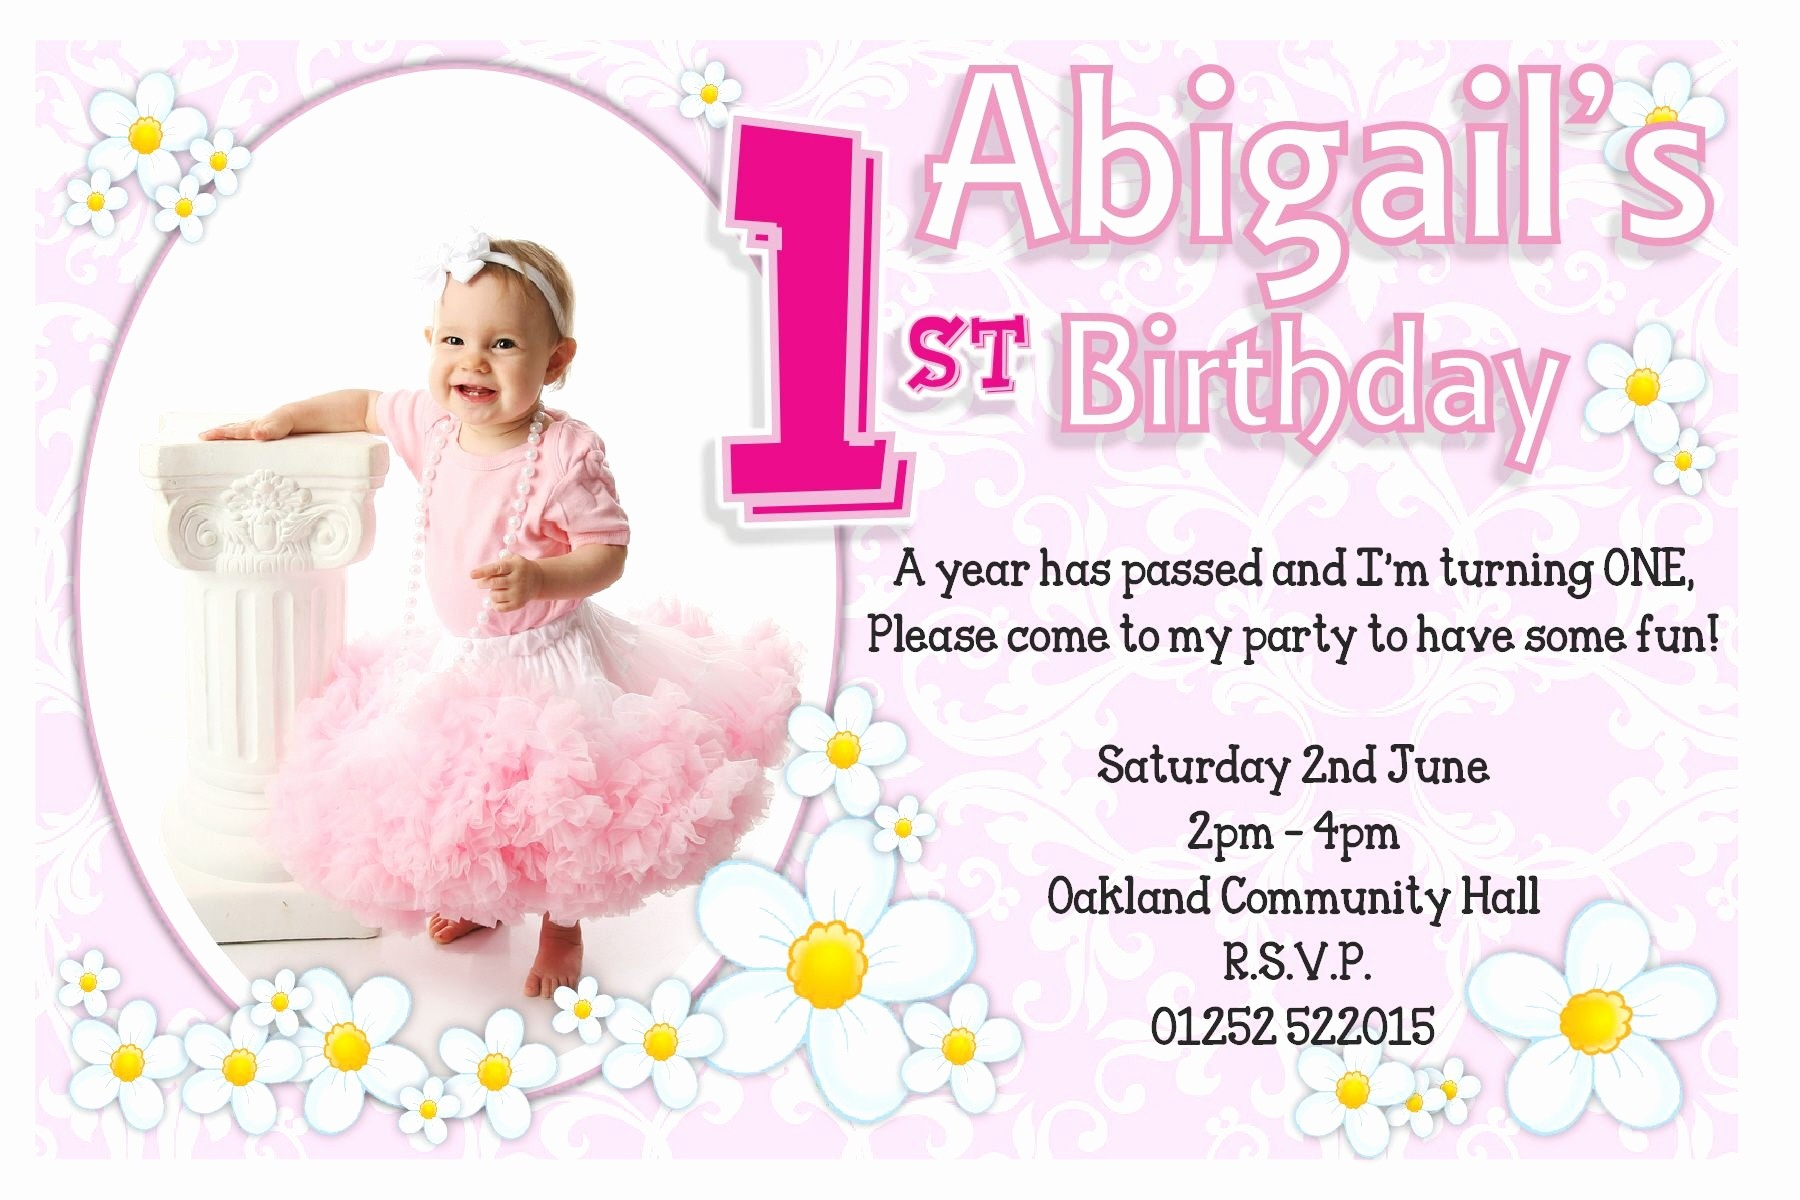 invitation for first birthday of my daughter ; invitation-for-birthday-of-daughter-best-birthday-card-for-my-daughter-new-1st-birthday-invitations-girl-of-invitation-for-birthday-of-daughter